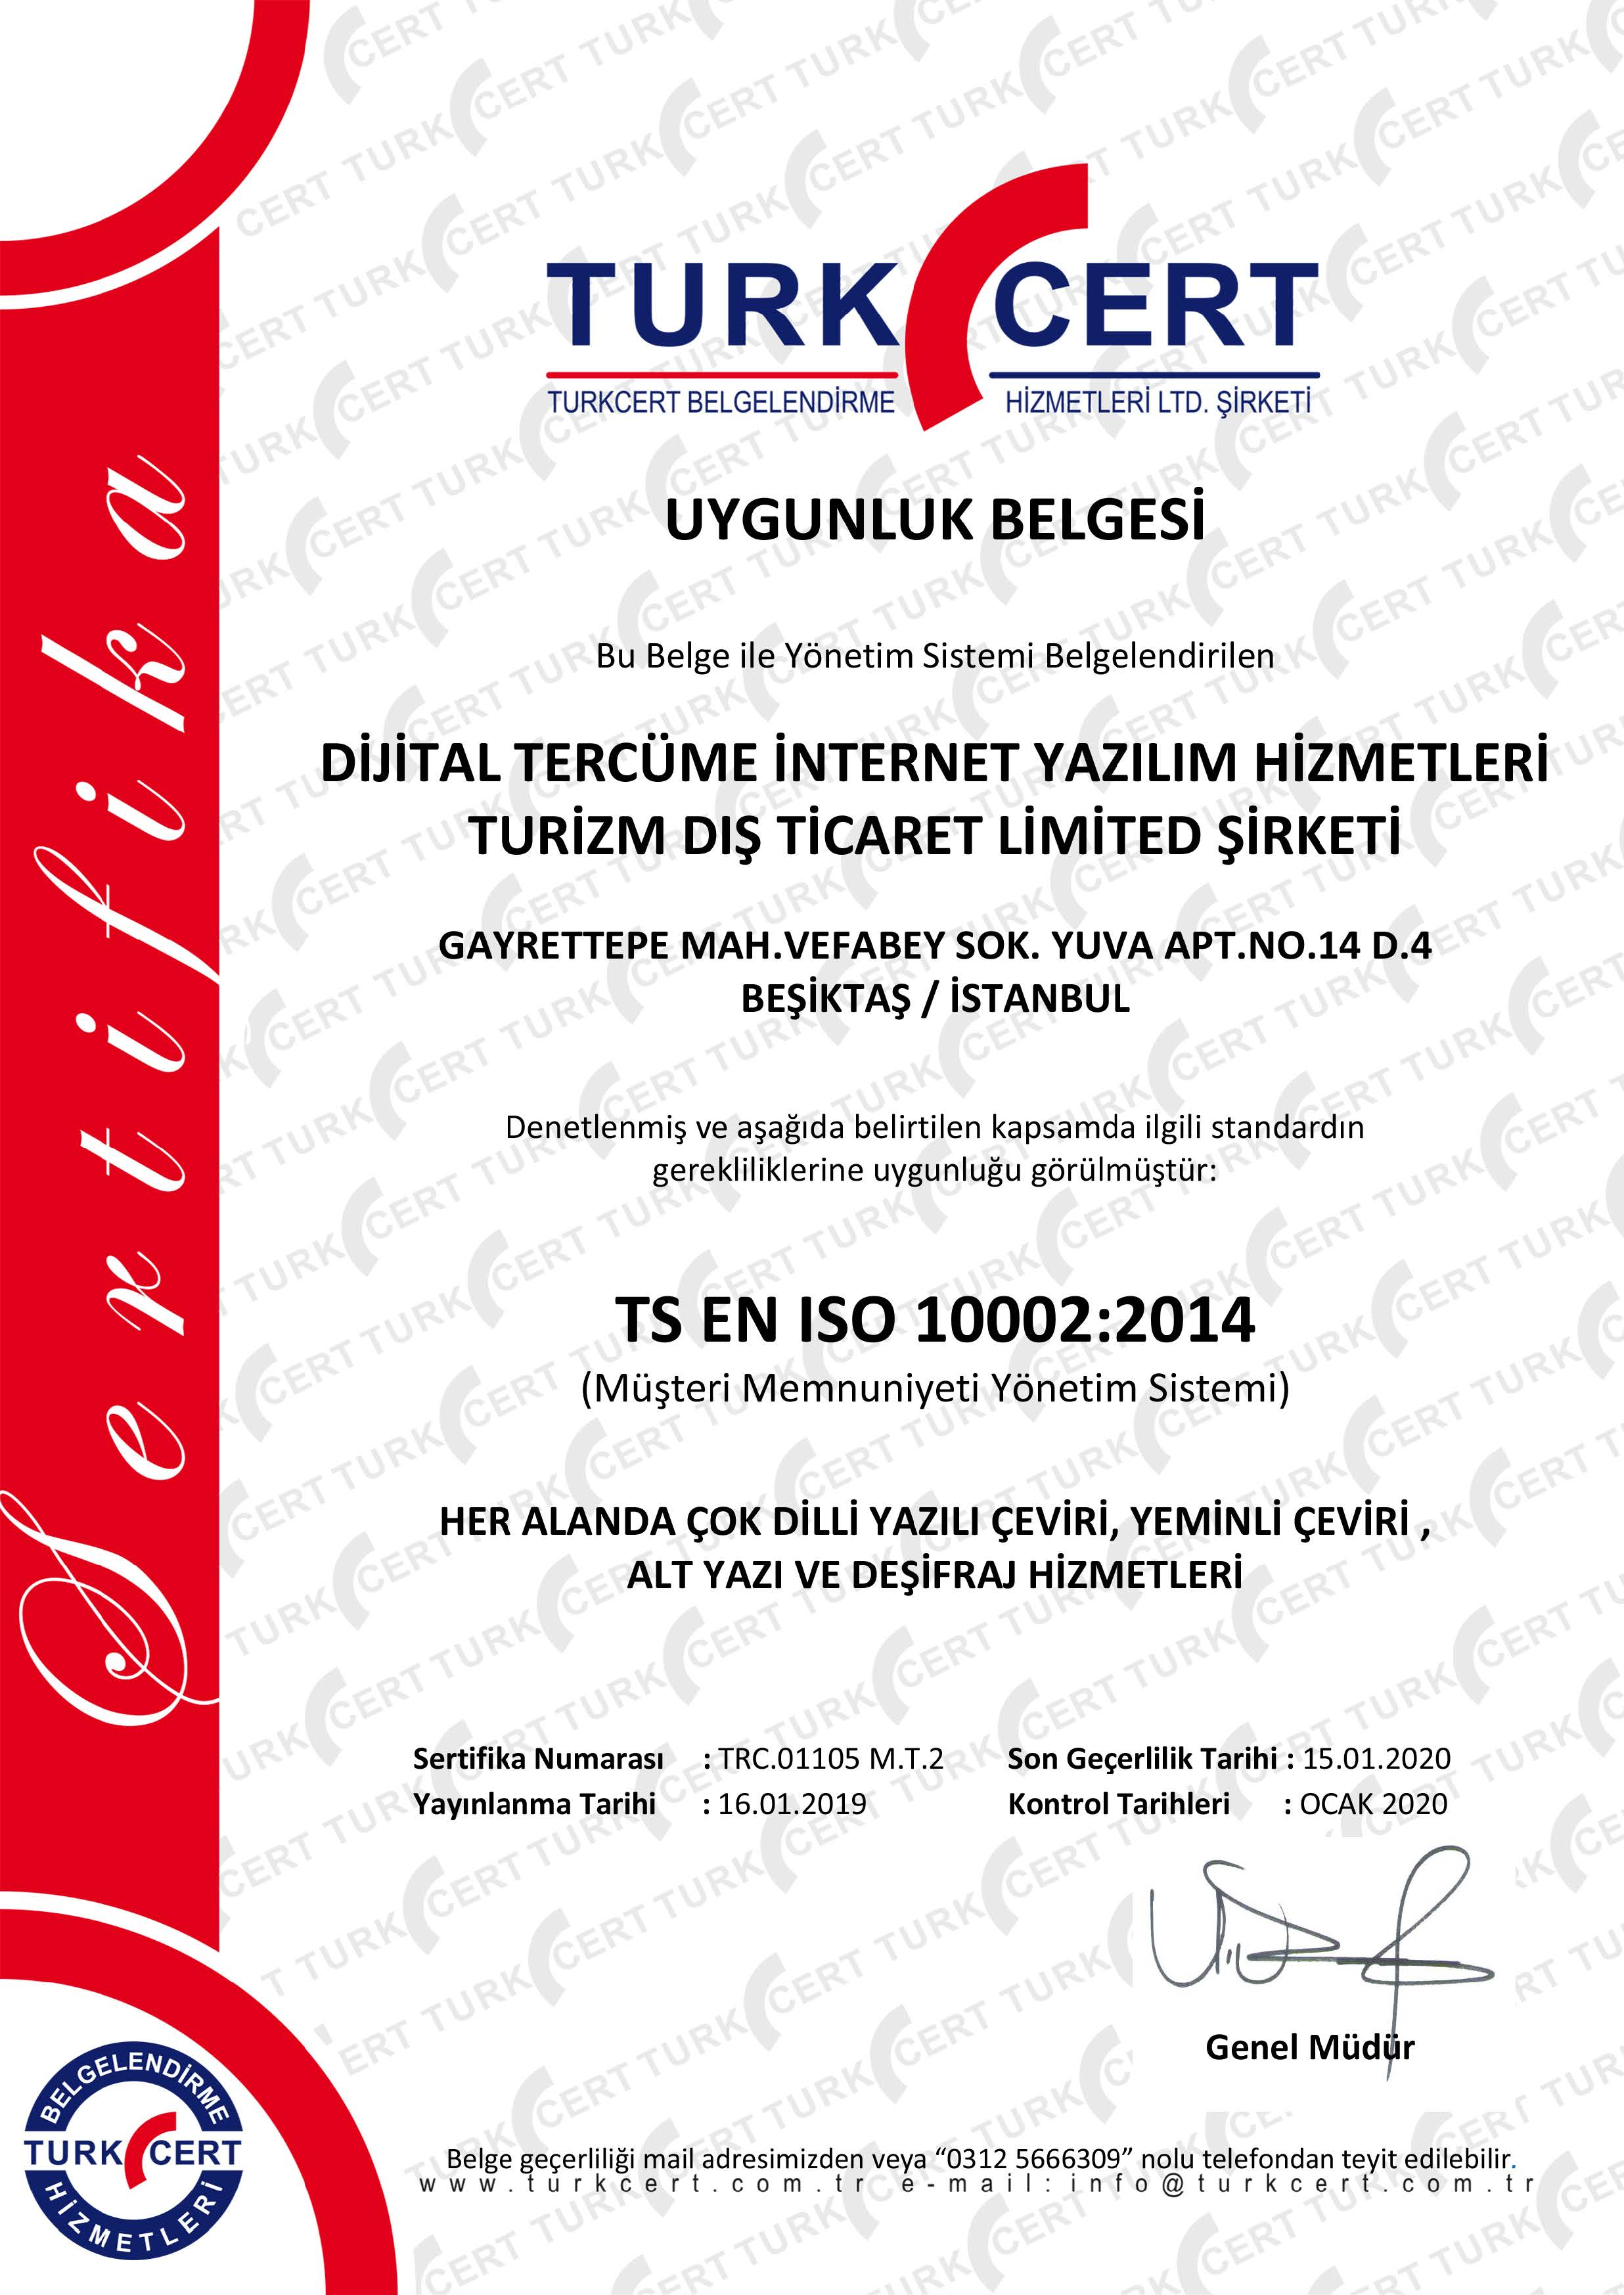 <strong>TS EN ISO 10002:2014</strong> Customer Satisfaction Management System